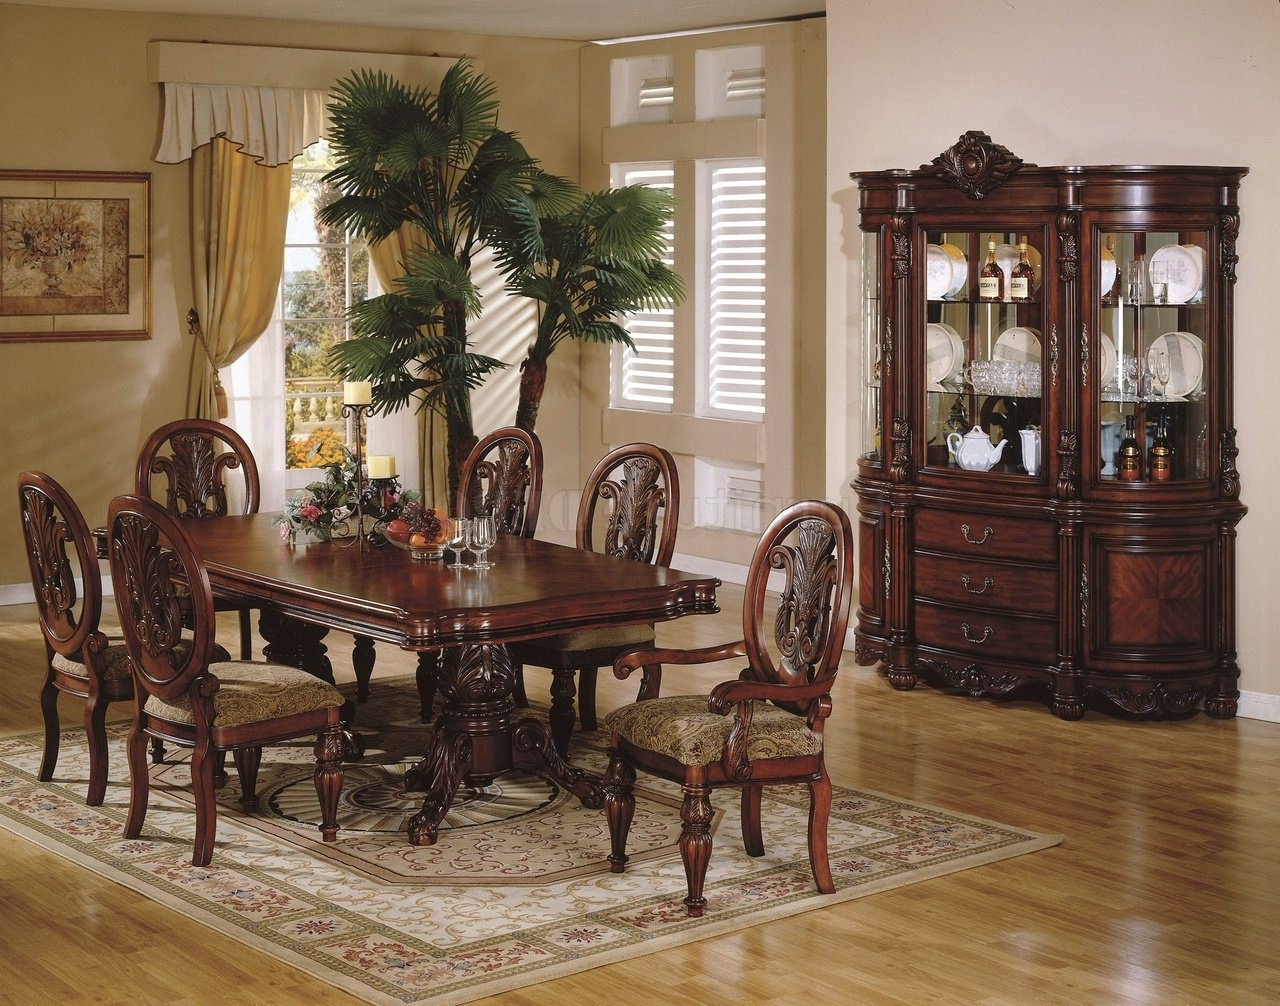 Traditional Dining Tables For Most Popular Traditional Dining Room Sets – Cheekybeaglestudios (View 18 of 25)